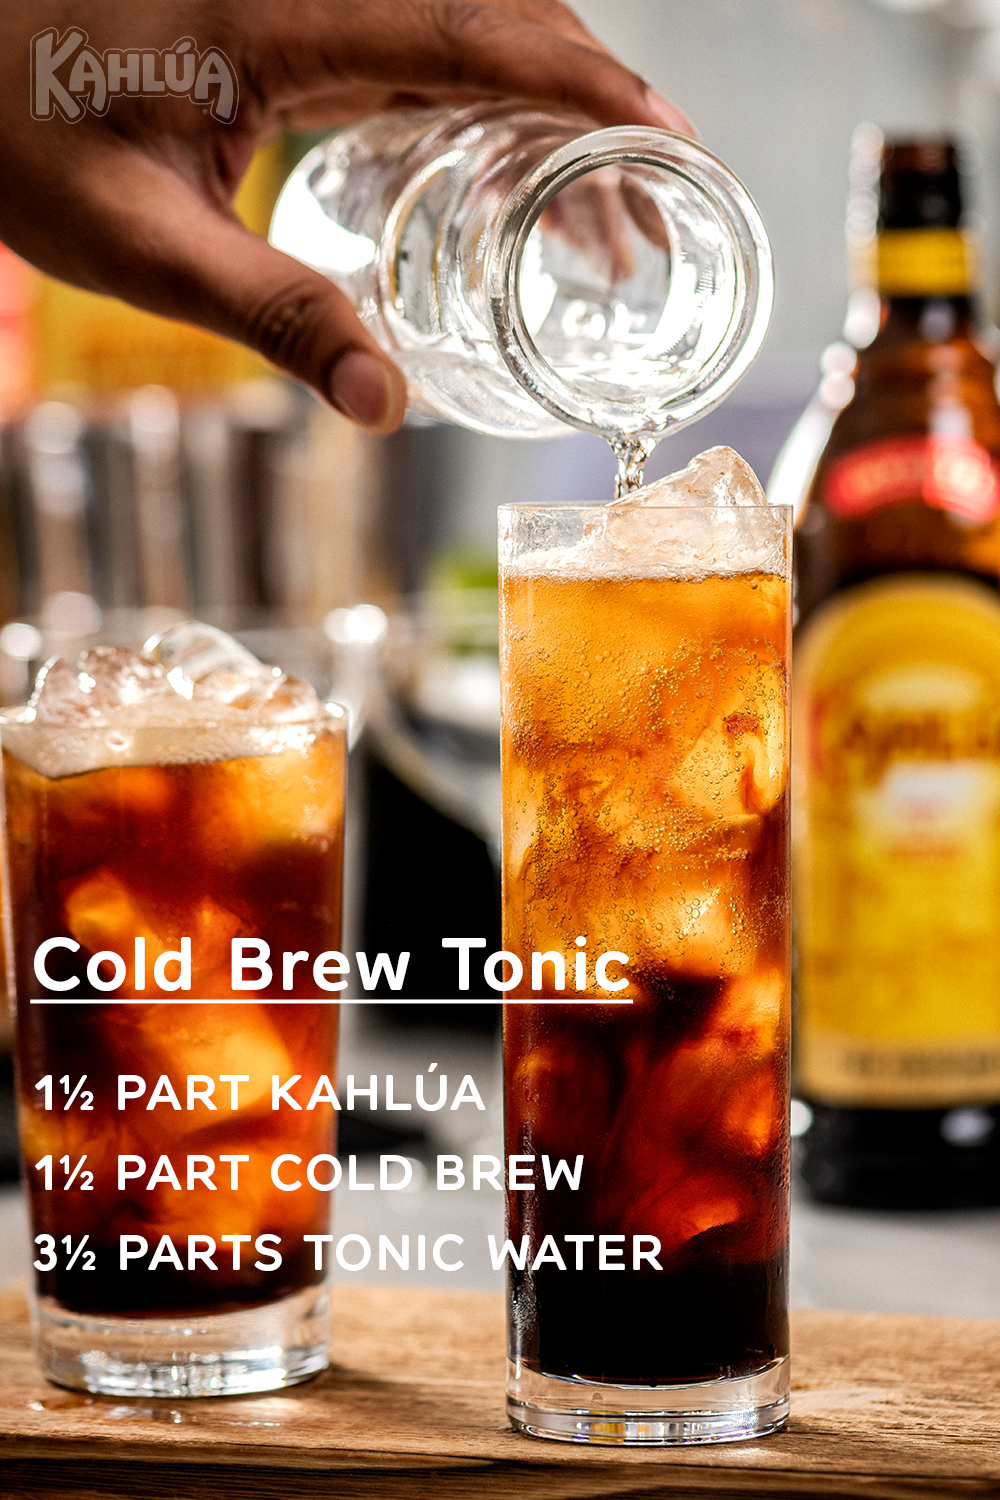 Kahlúa Cold Brew Tonic in 2020 Alcohol drink recipes